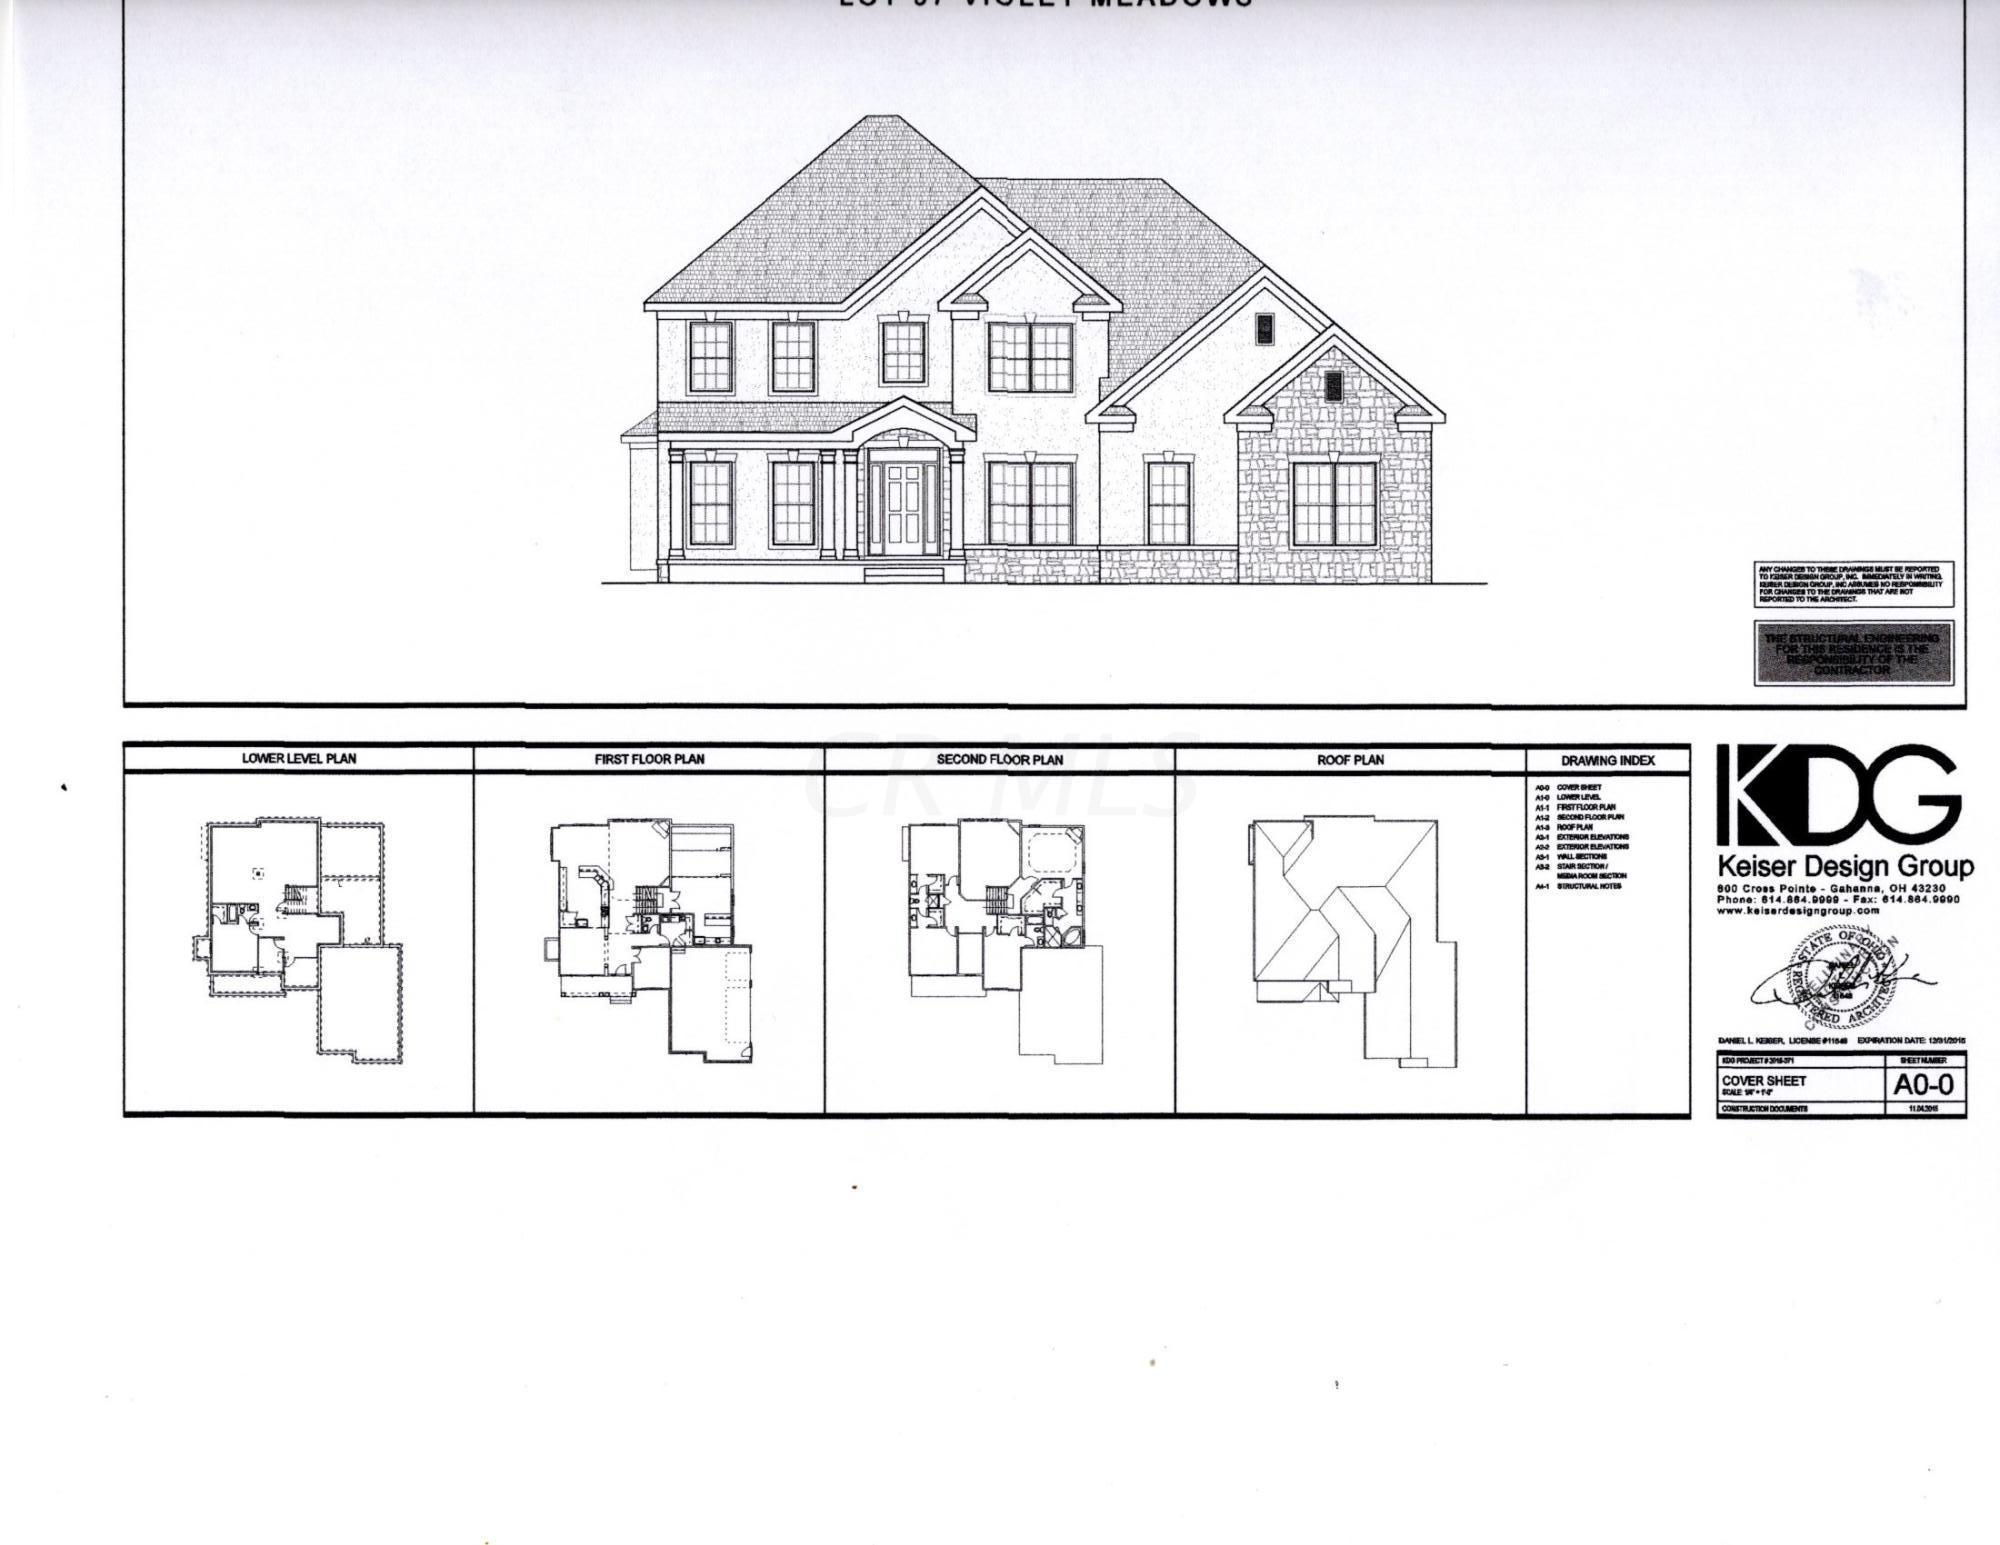 Photo of Bianca Dr. - Lot 175 Drive NW, Pickerington, OH 43147